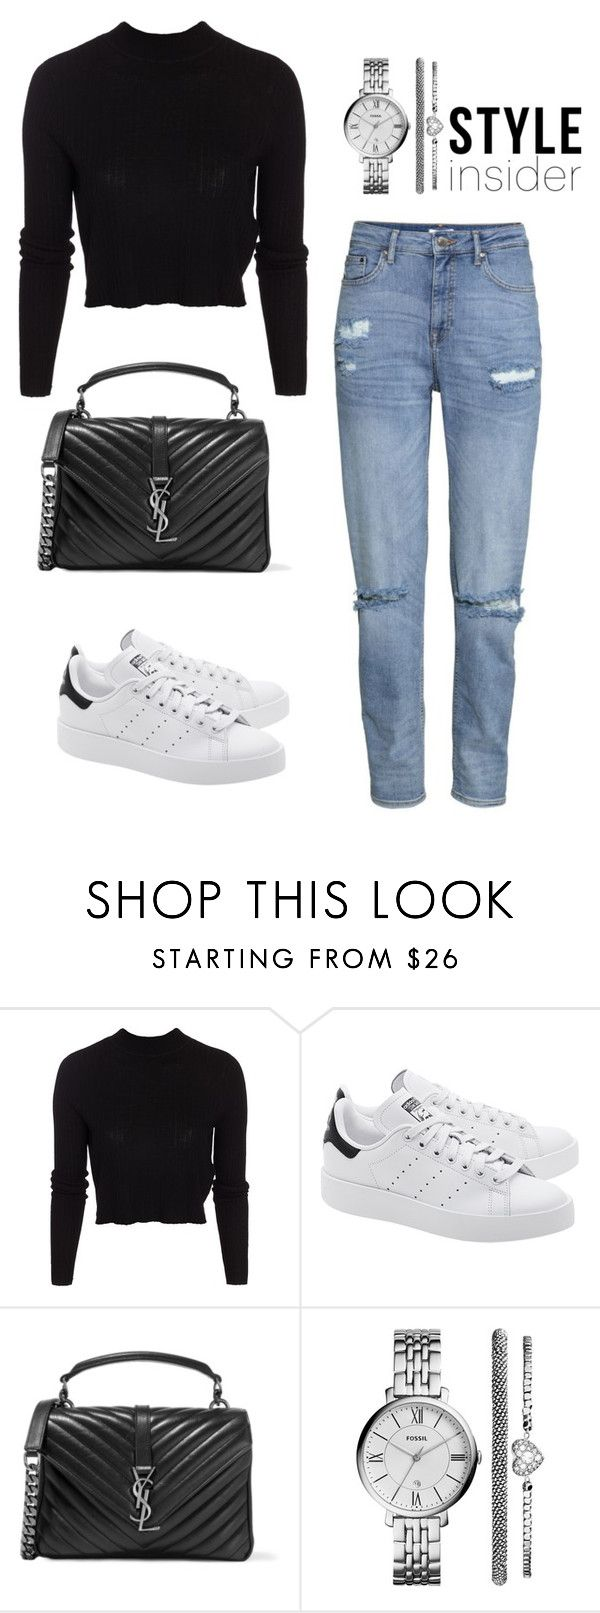 """""""Untitled #249"""" by alinut ❤ liked on Polyvore featuring ONLY, adidas Originals, Yves Saint Laurent and FOSSIL"""